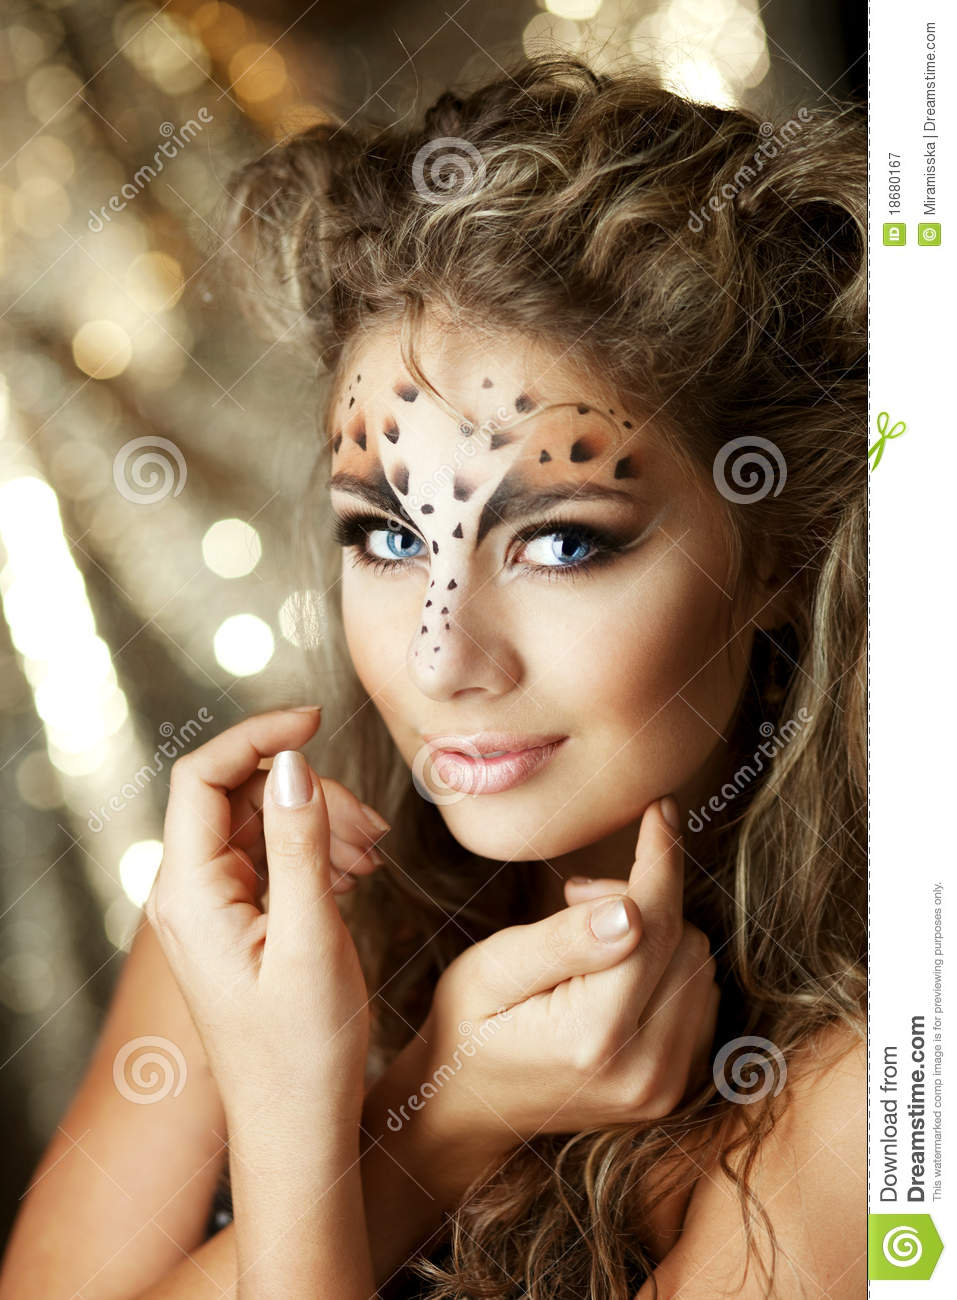 Girl With An Unusual Make Up As A Leopard Royalty Free